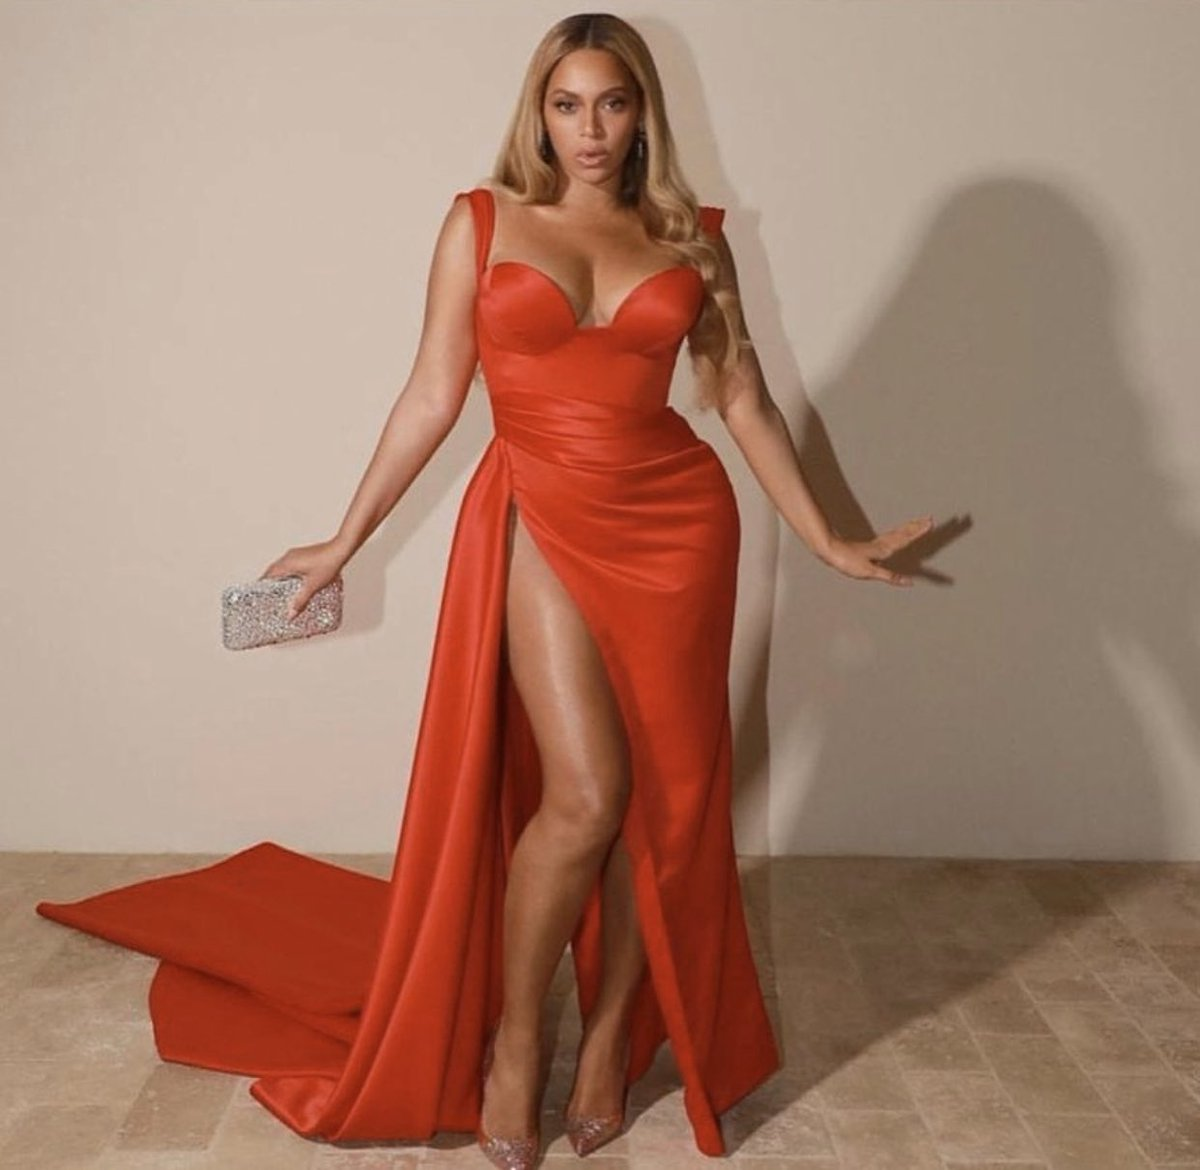 michelle-obama-presents-beyonce-with-humanitarian-award-2020-bet-awards